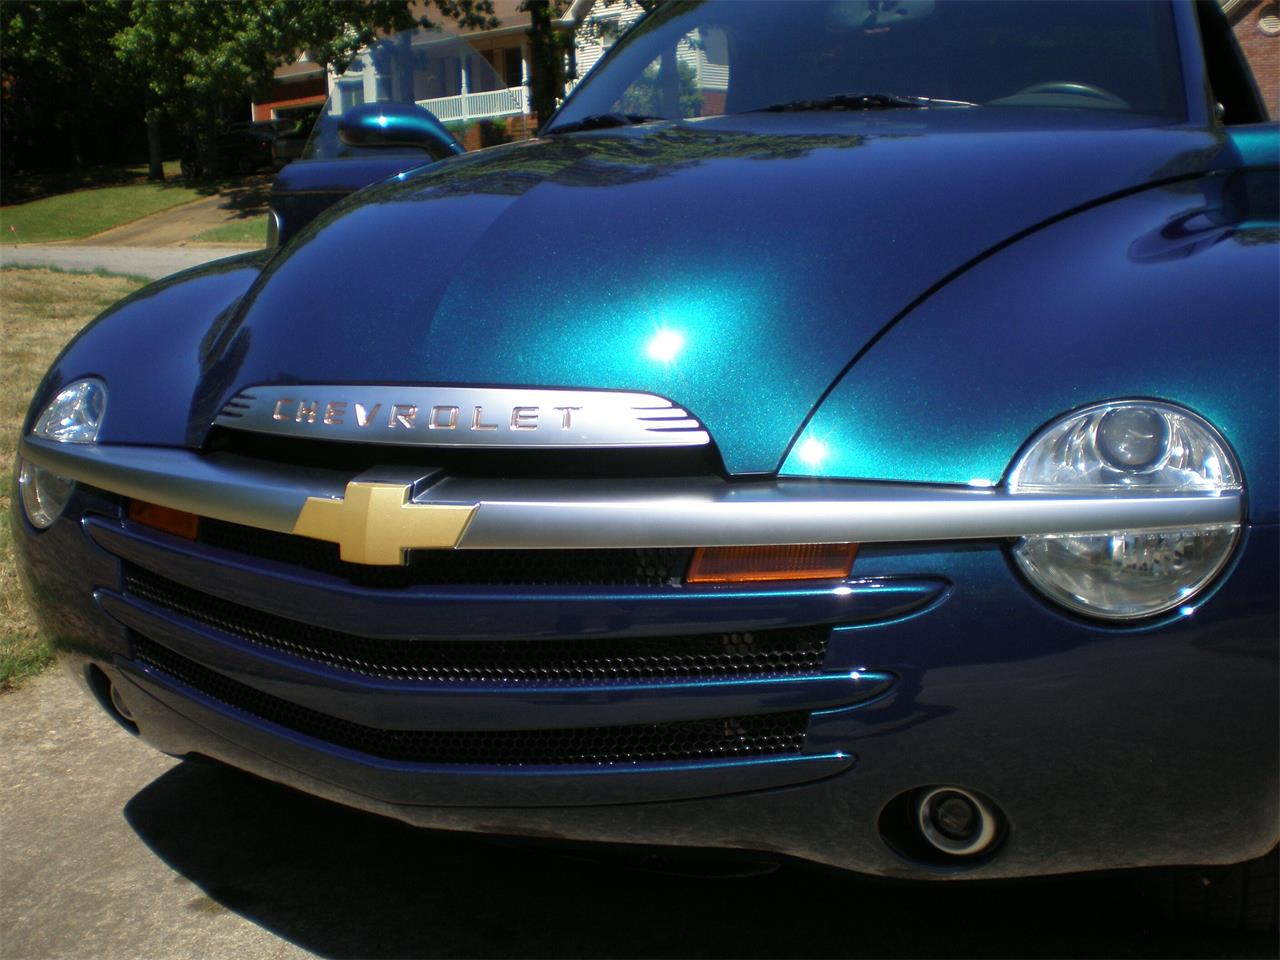 hight resolution of 2005 chevrolet ssr for sale classiccars com cc 977649 05 chevy trailblazer ext fuse box repair